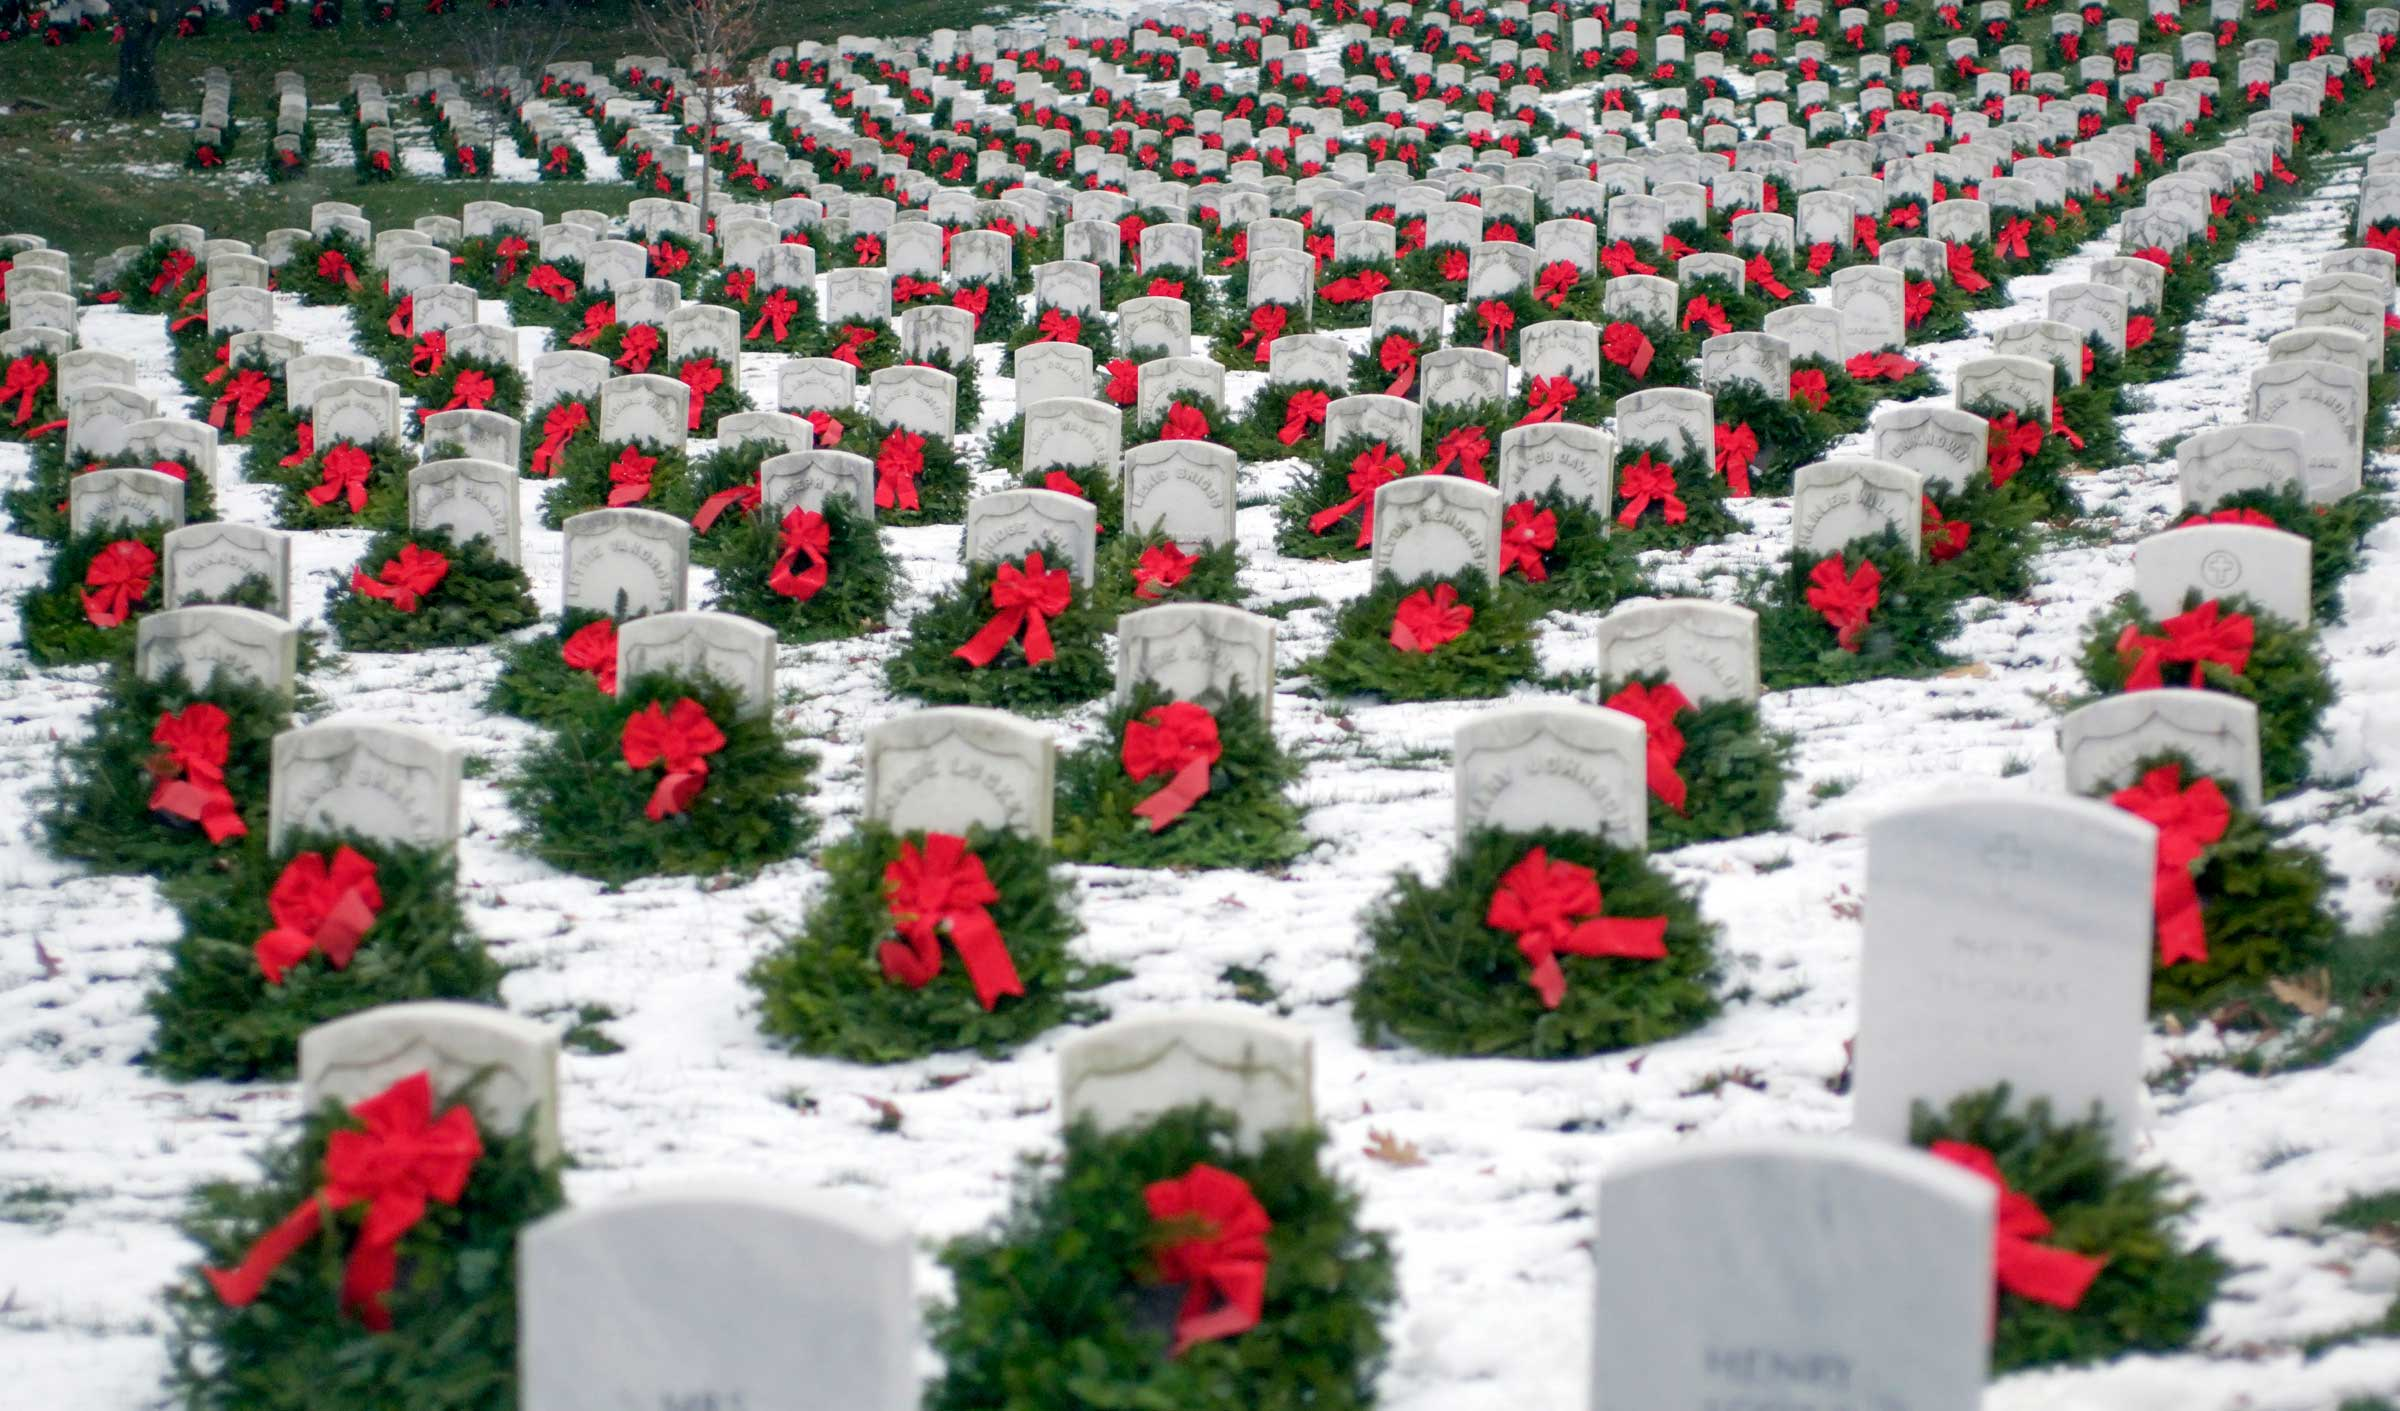 This iconic image became viral in 2005, inspiring increased national interest in the annual tribute and prompting the formation of Wreaths Across America as a non-profit 501-(c)(3)